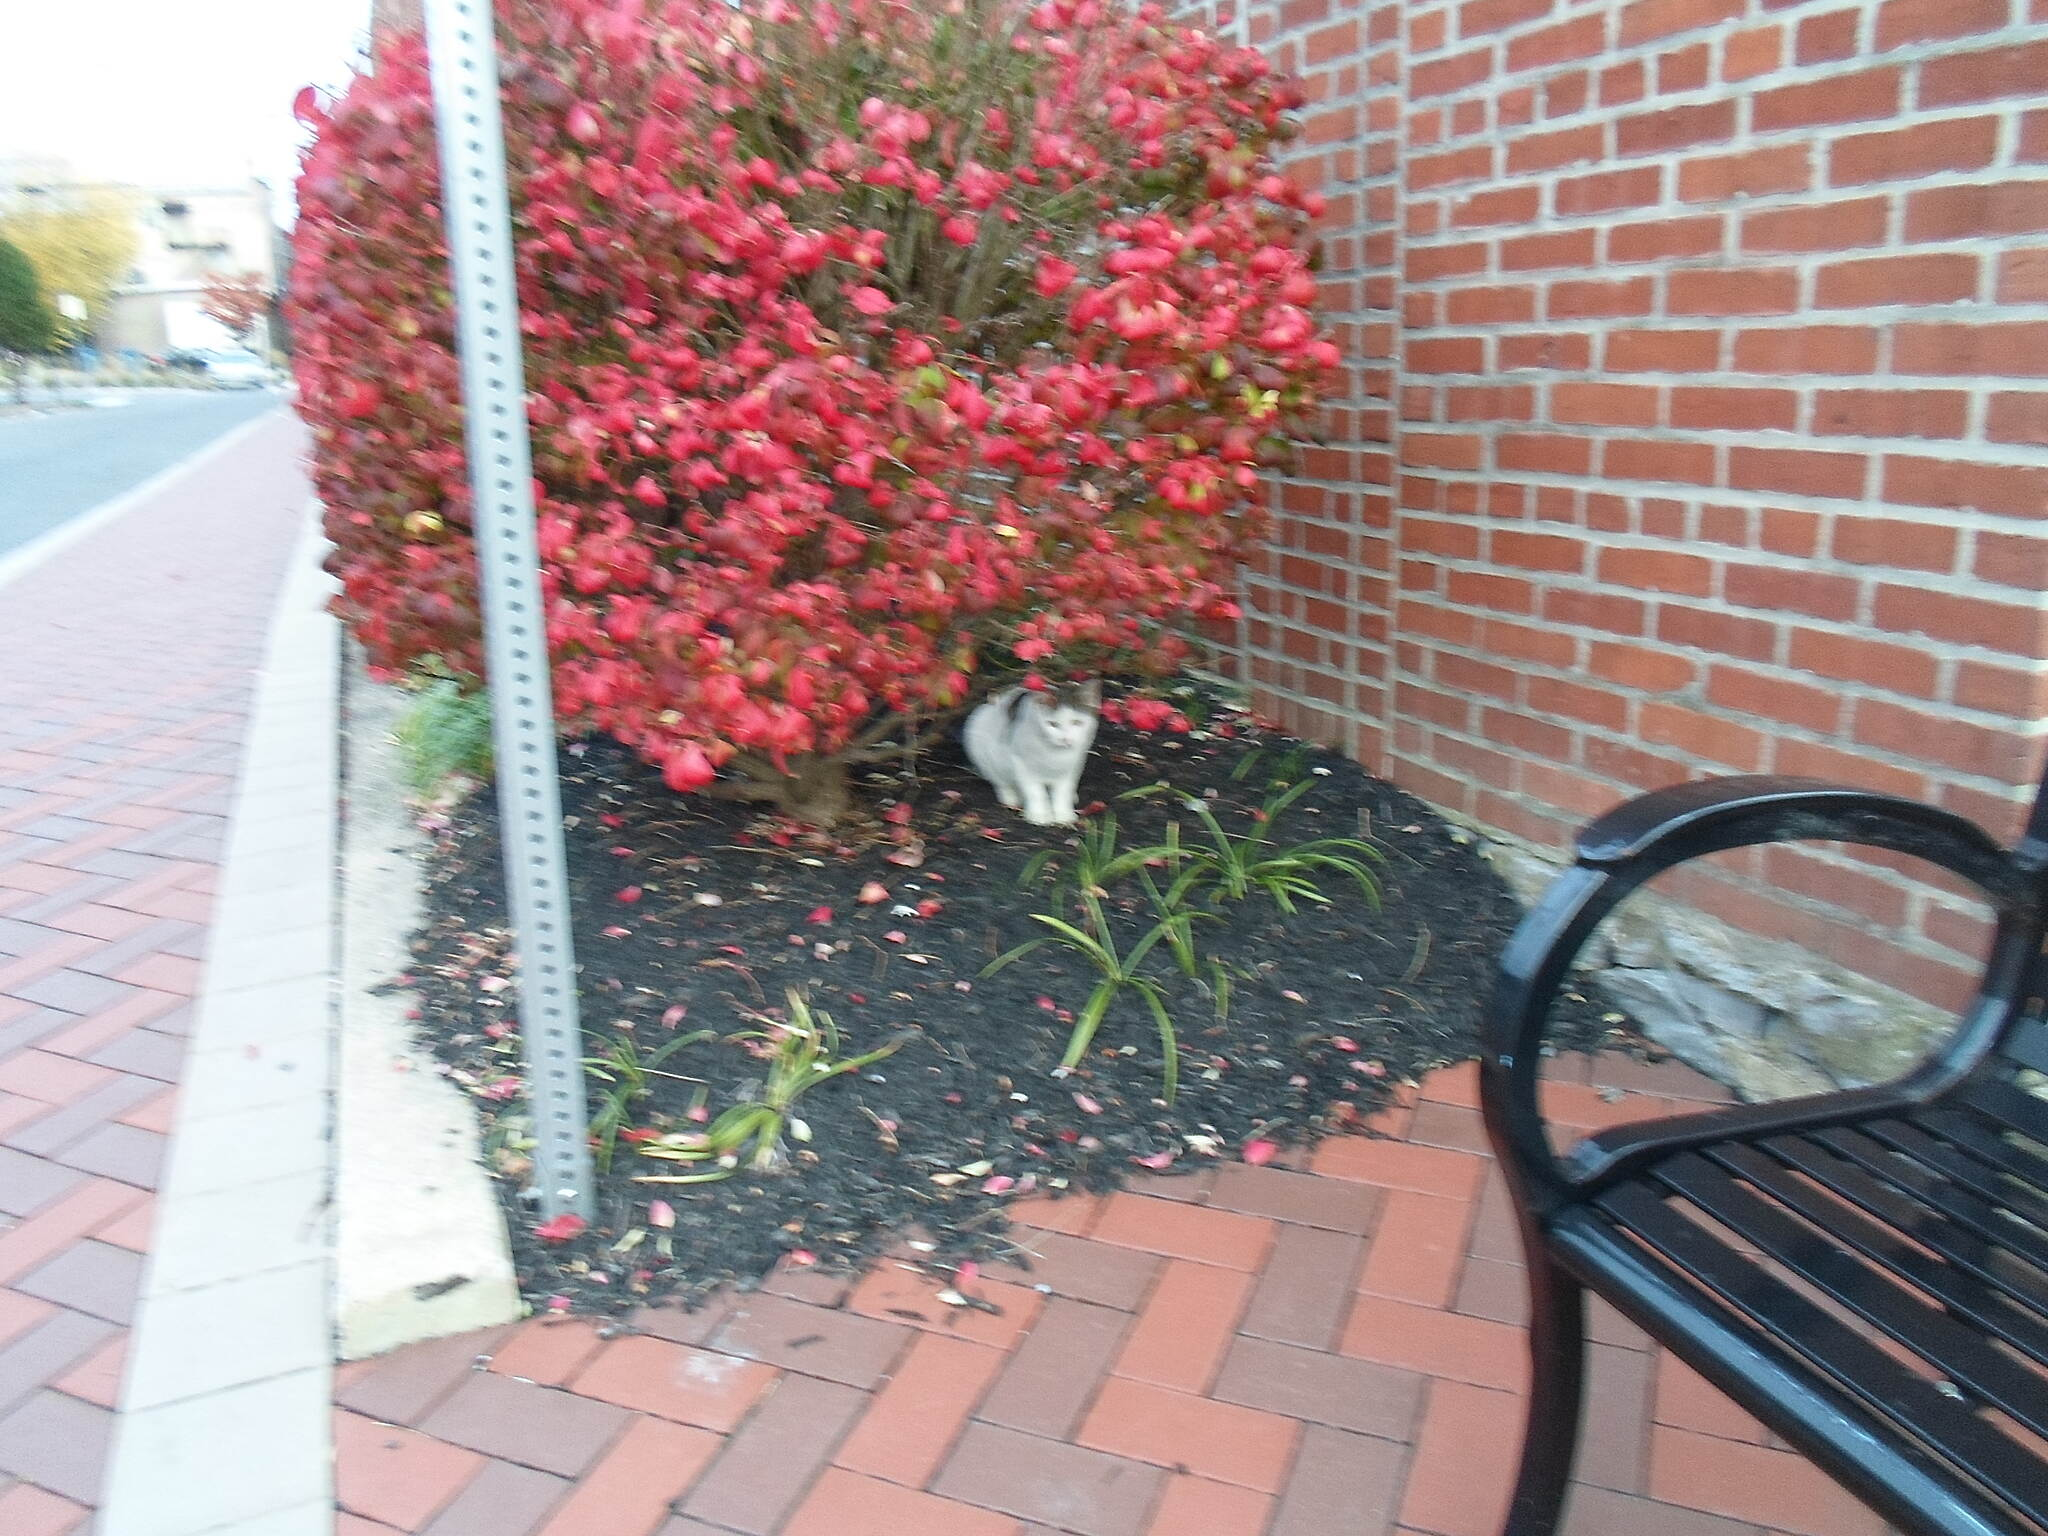 Elizabethtown Connector Trail Elizabethtown Connector Trail This cat was hanging out in the bushes that separate the trail (and Rose Alley) from an apartment building. Taken Oct. 2015.